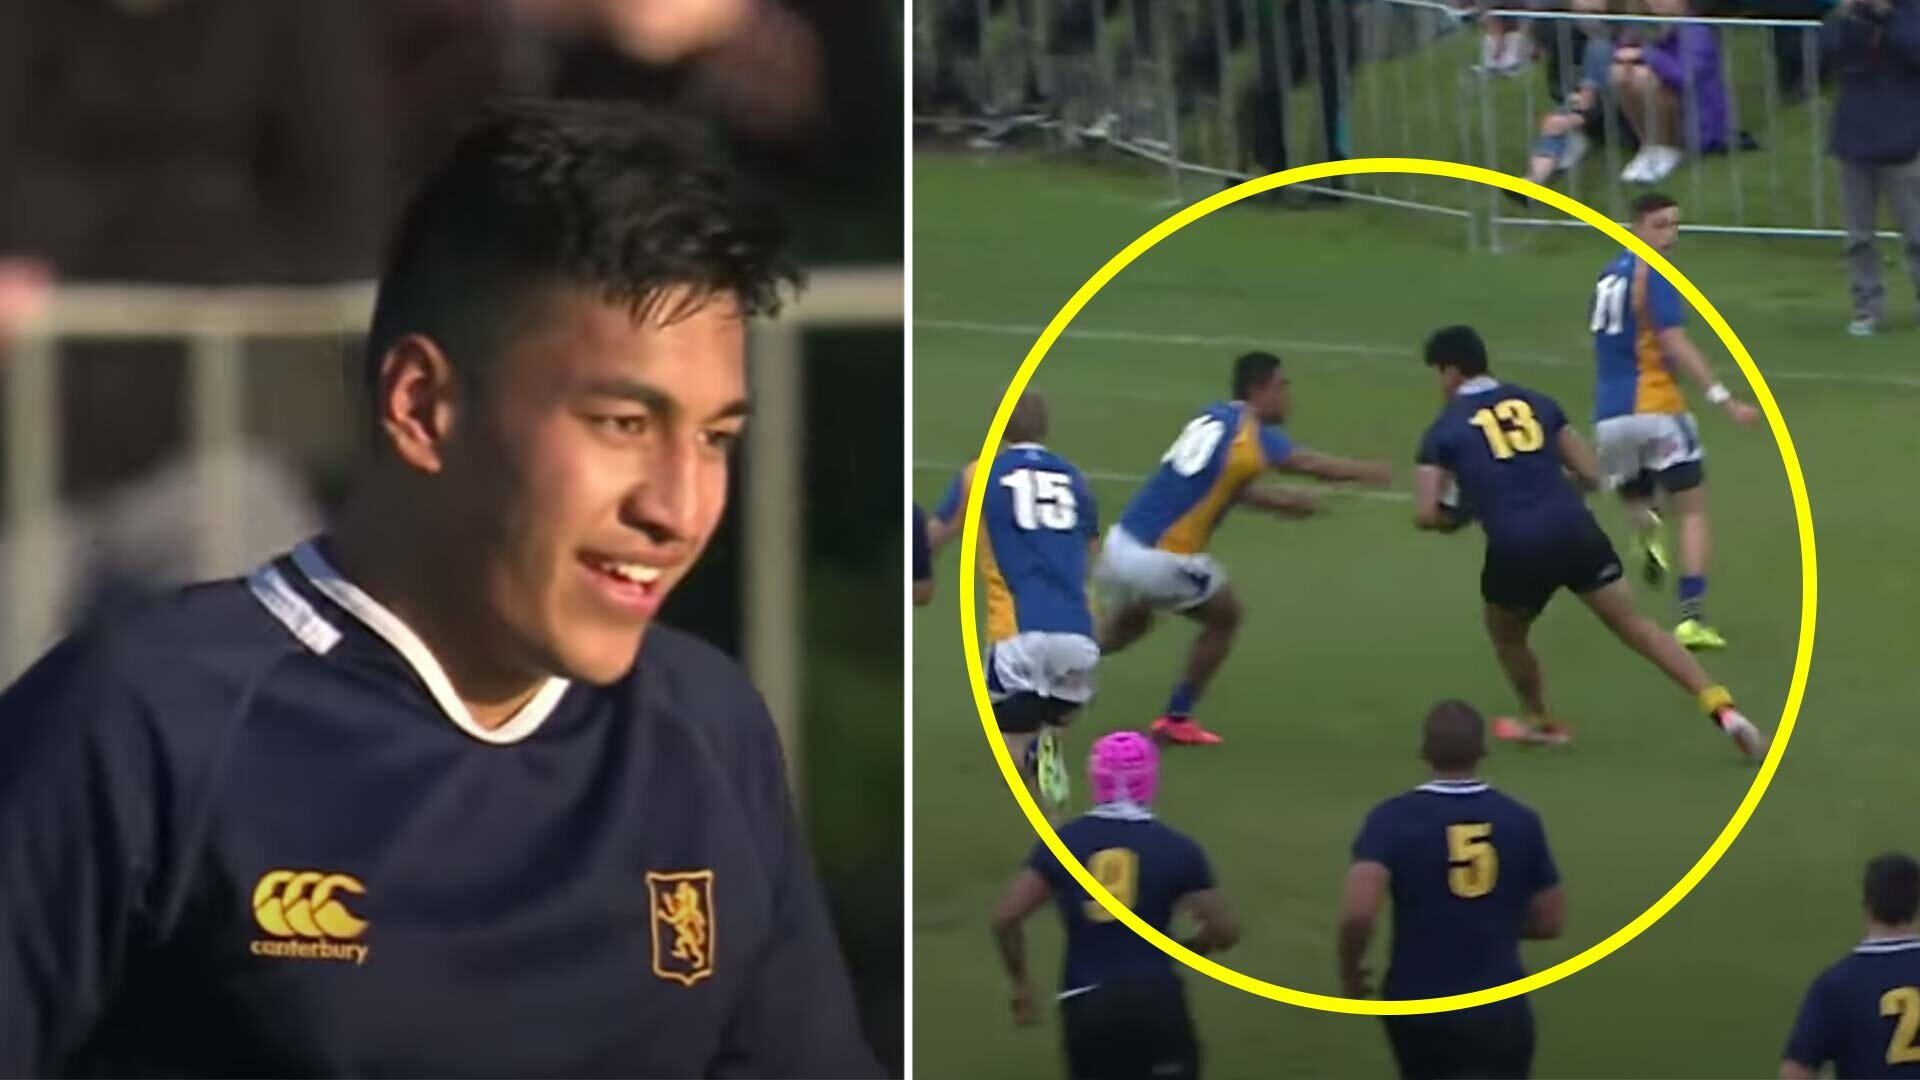 Someone has just released Rieko Ioane's stunning highlight reel from when he was a schoolboy